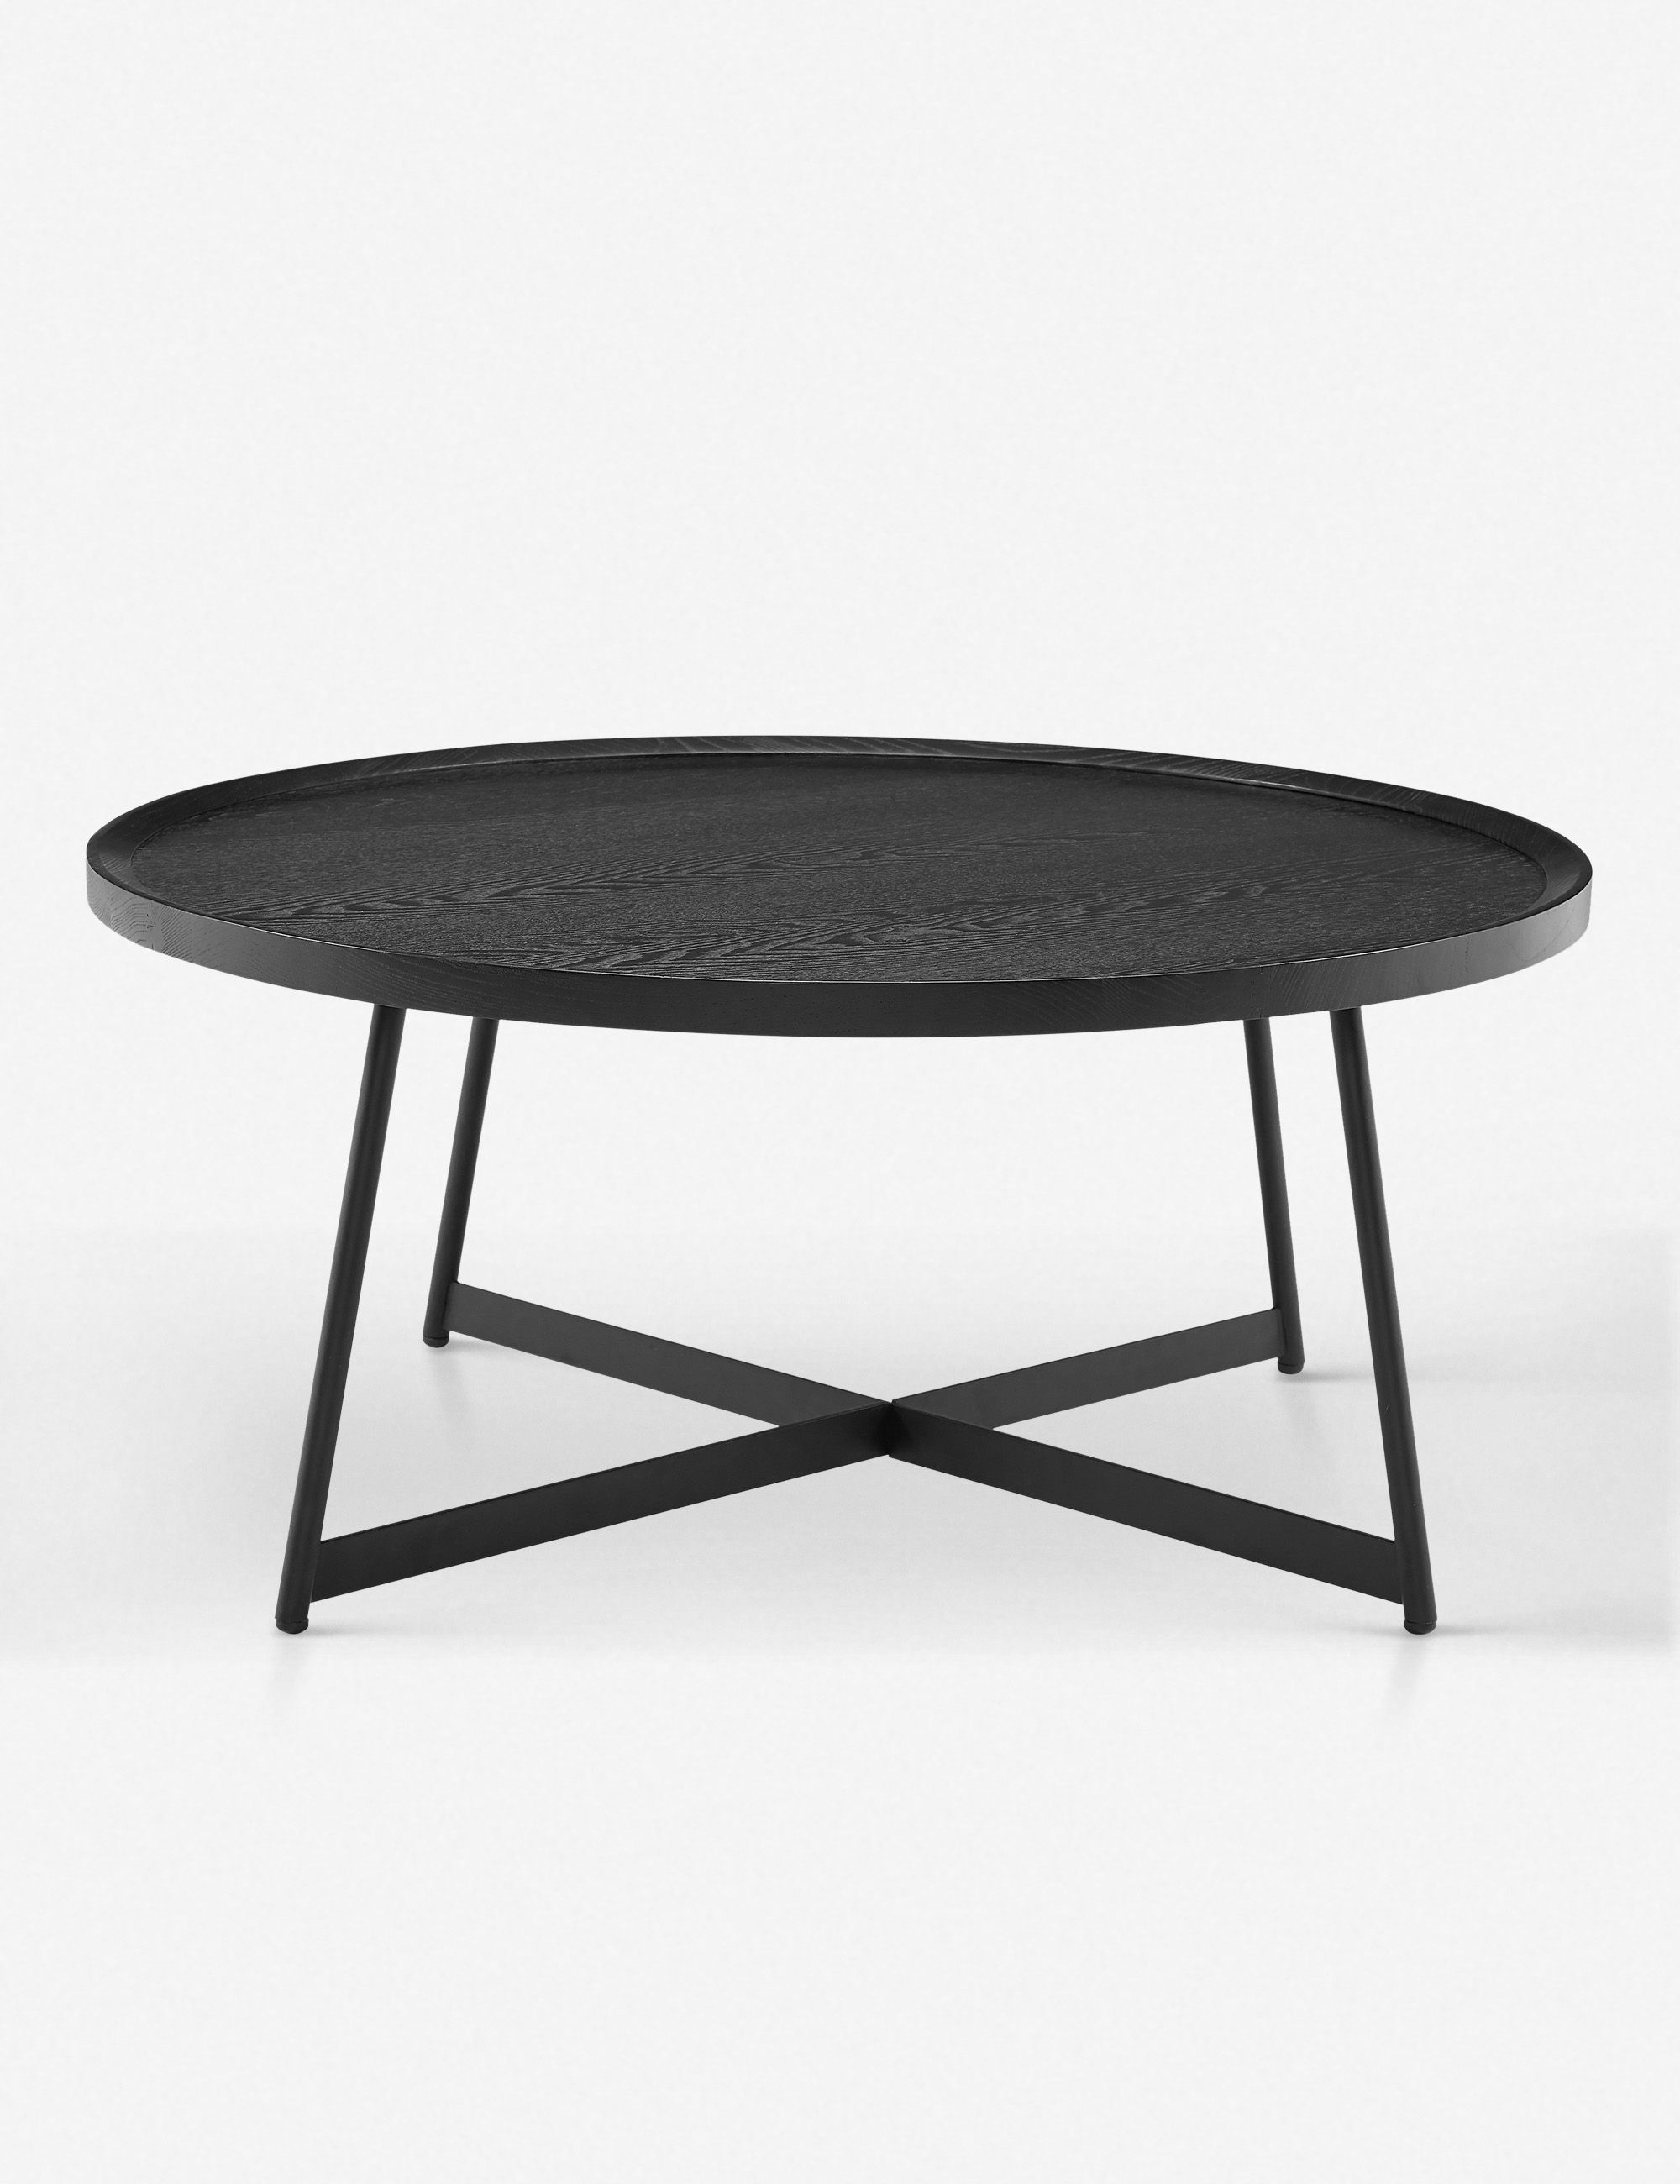 Gweneth Round Coffee Table Black Ash In 2021 Round Coffee Table Coffee Table Steel Coffee Table